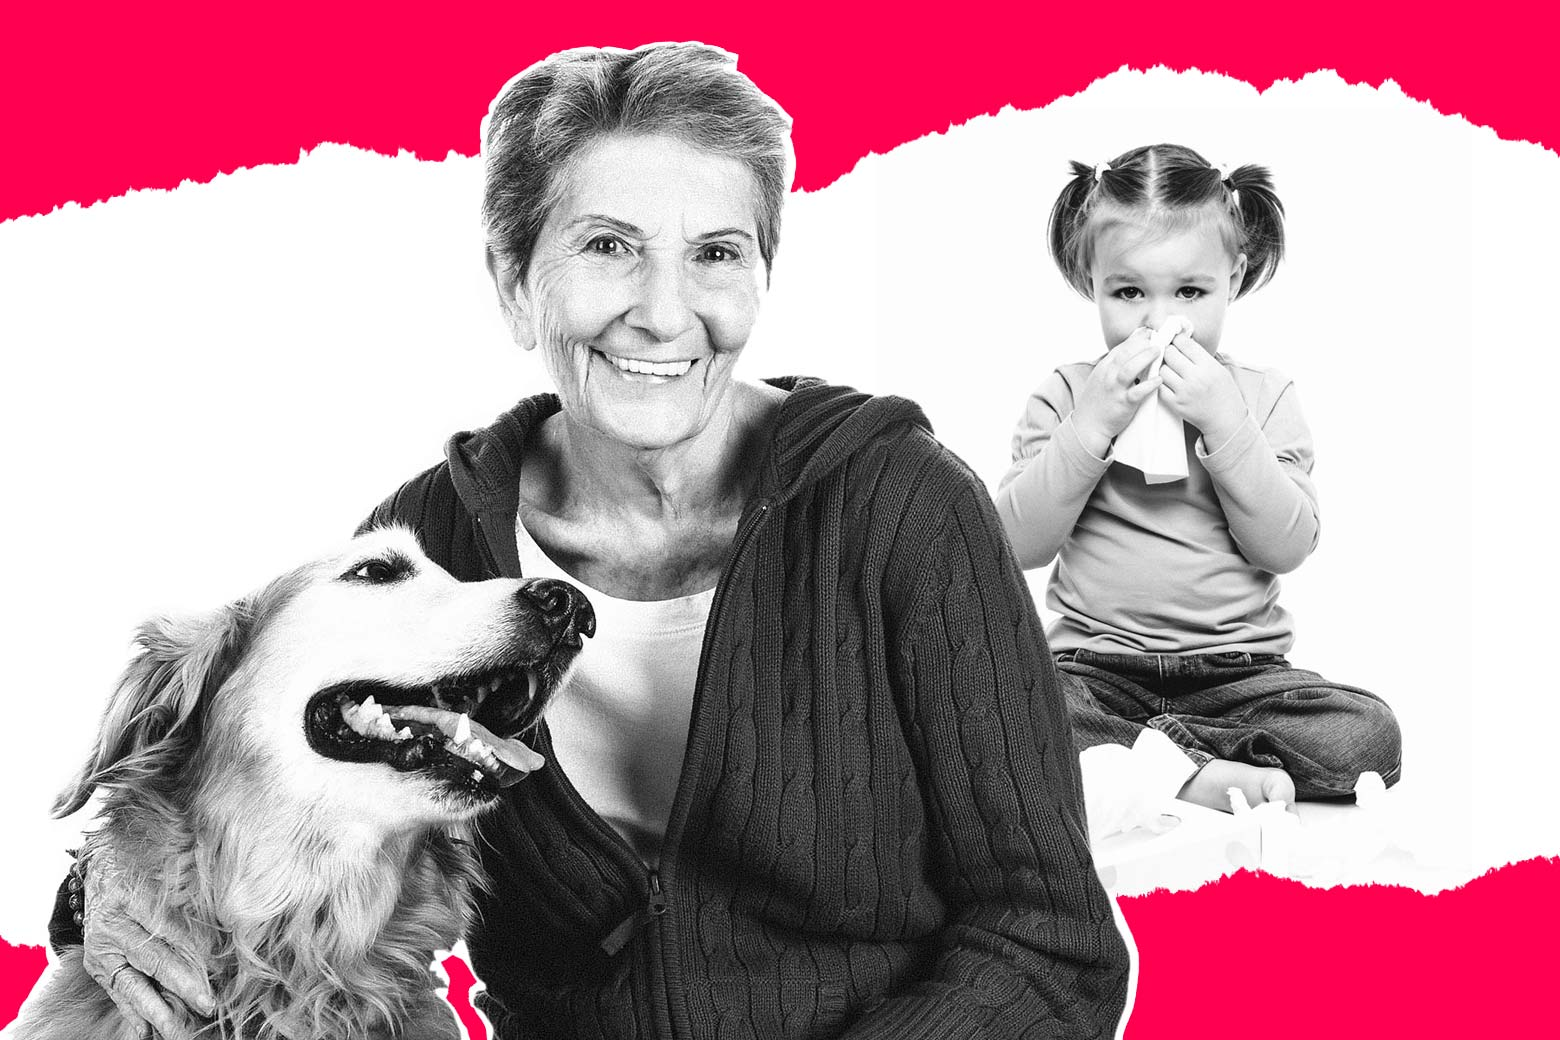 Photo illustration: An older woman smiling with a dog next to an image of a young girl holding a tissue to her nose.